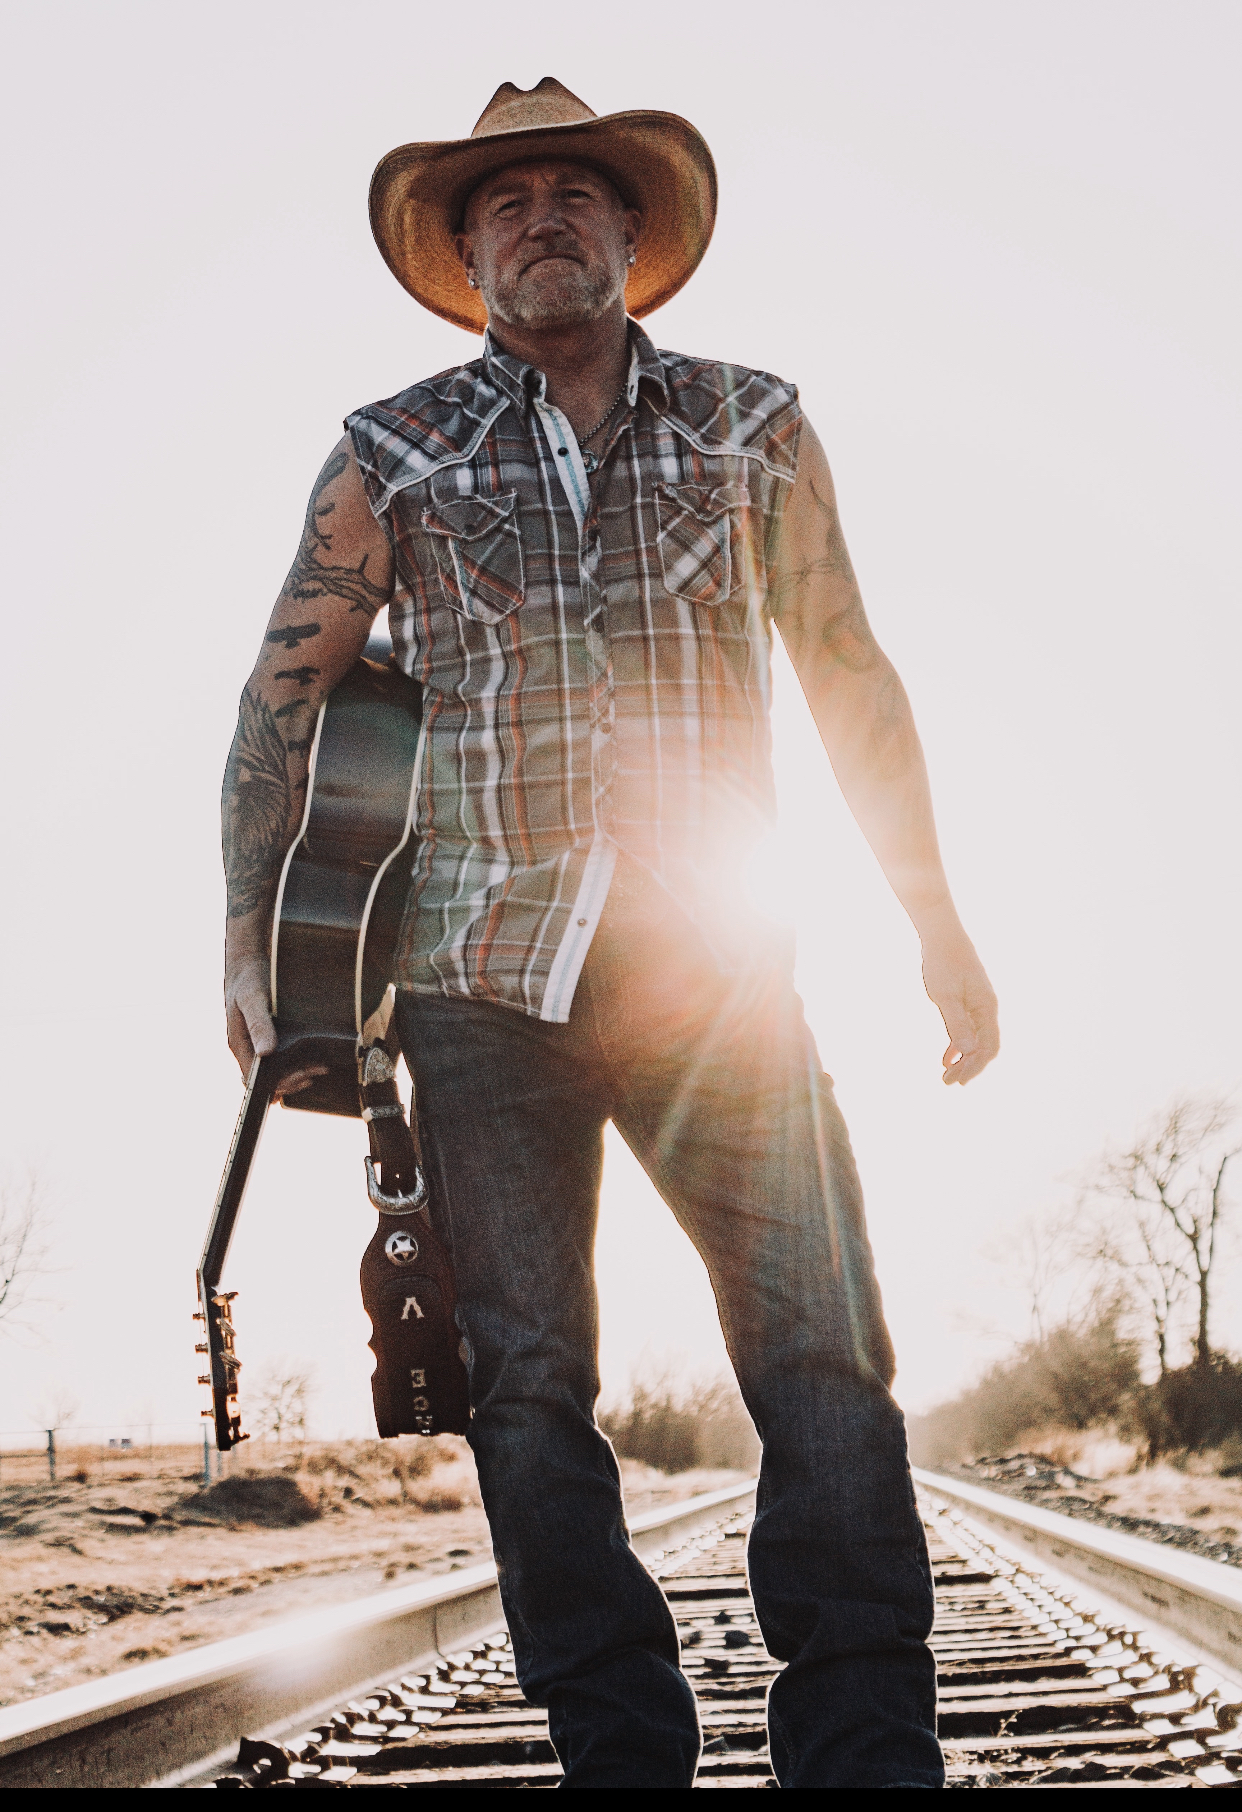 Vince Van Is Coming Up with A New Album for Country Music Lovers and Followers